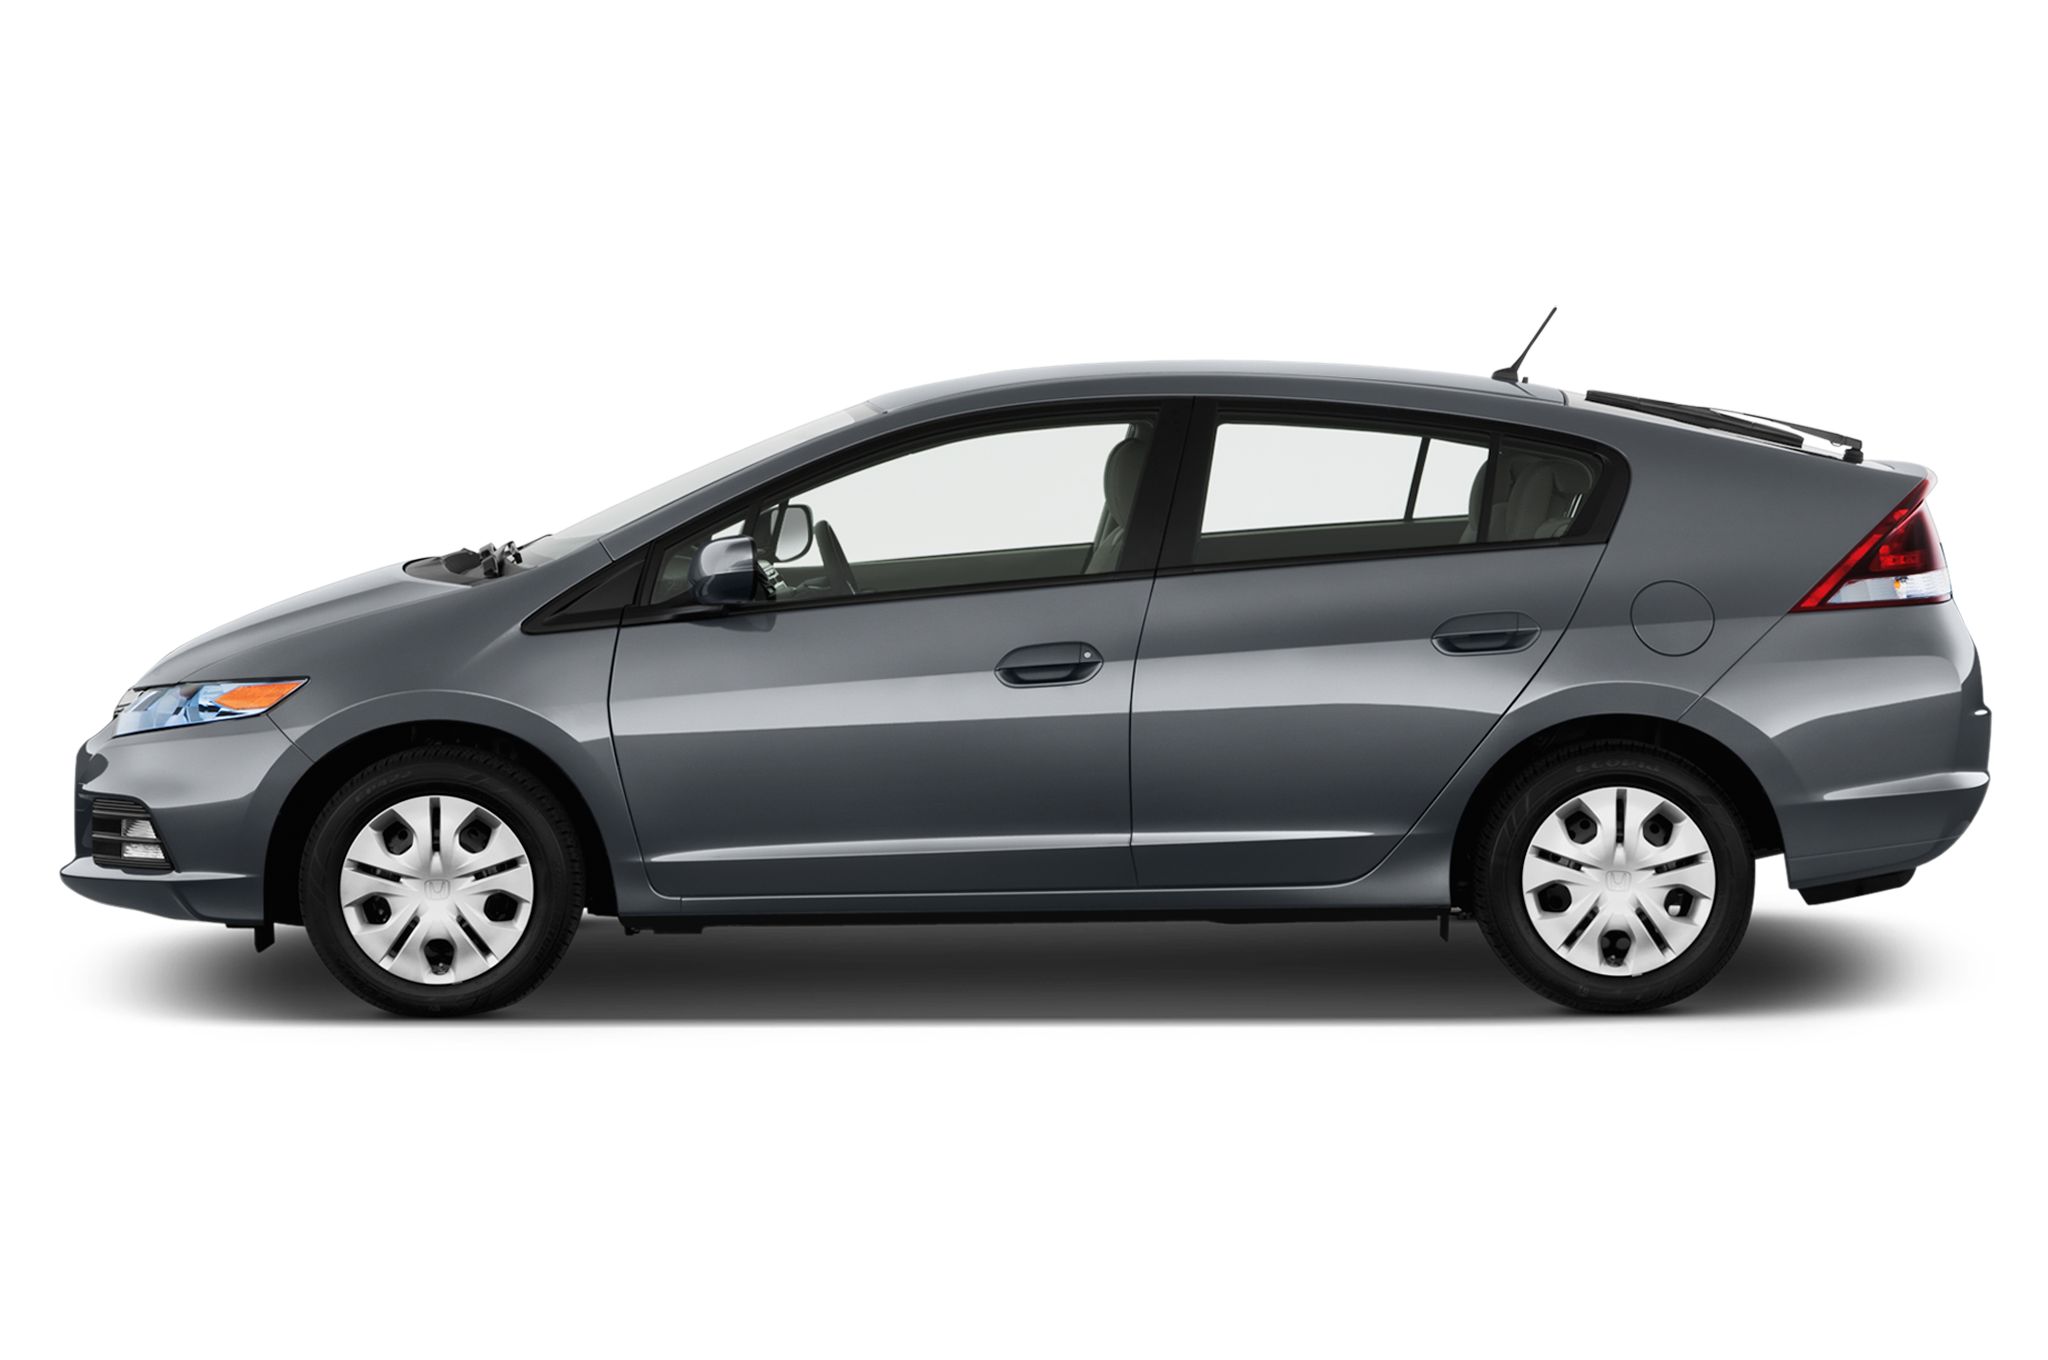 Hybrid car clipart graphic black and white stock Honda to Build Plug-in Hybrids and Electric Vehicle in 2012 graphic black and white stock